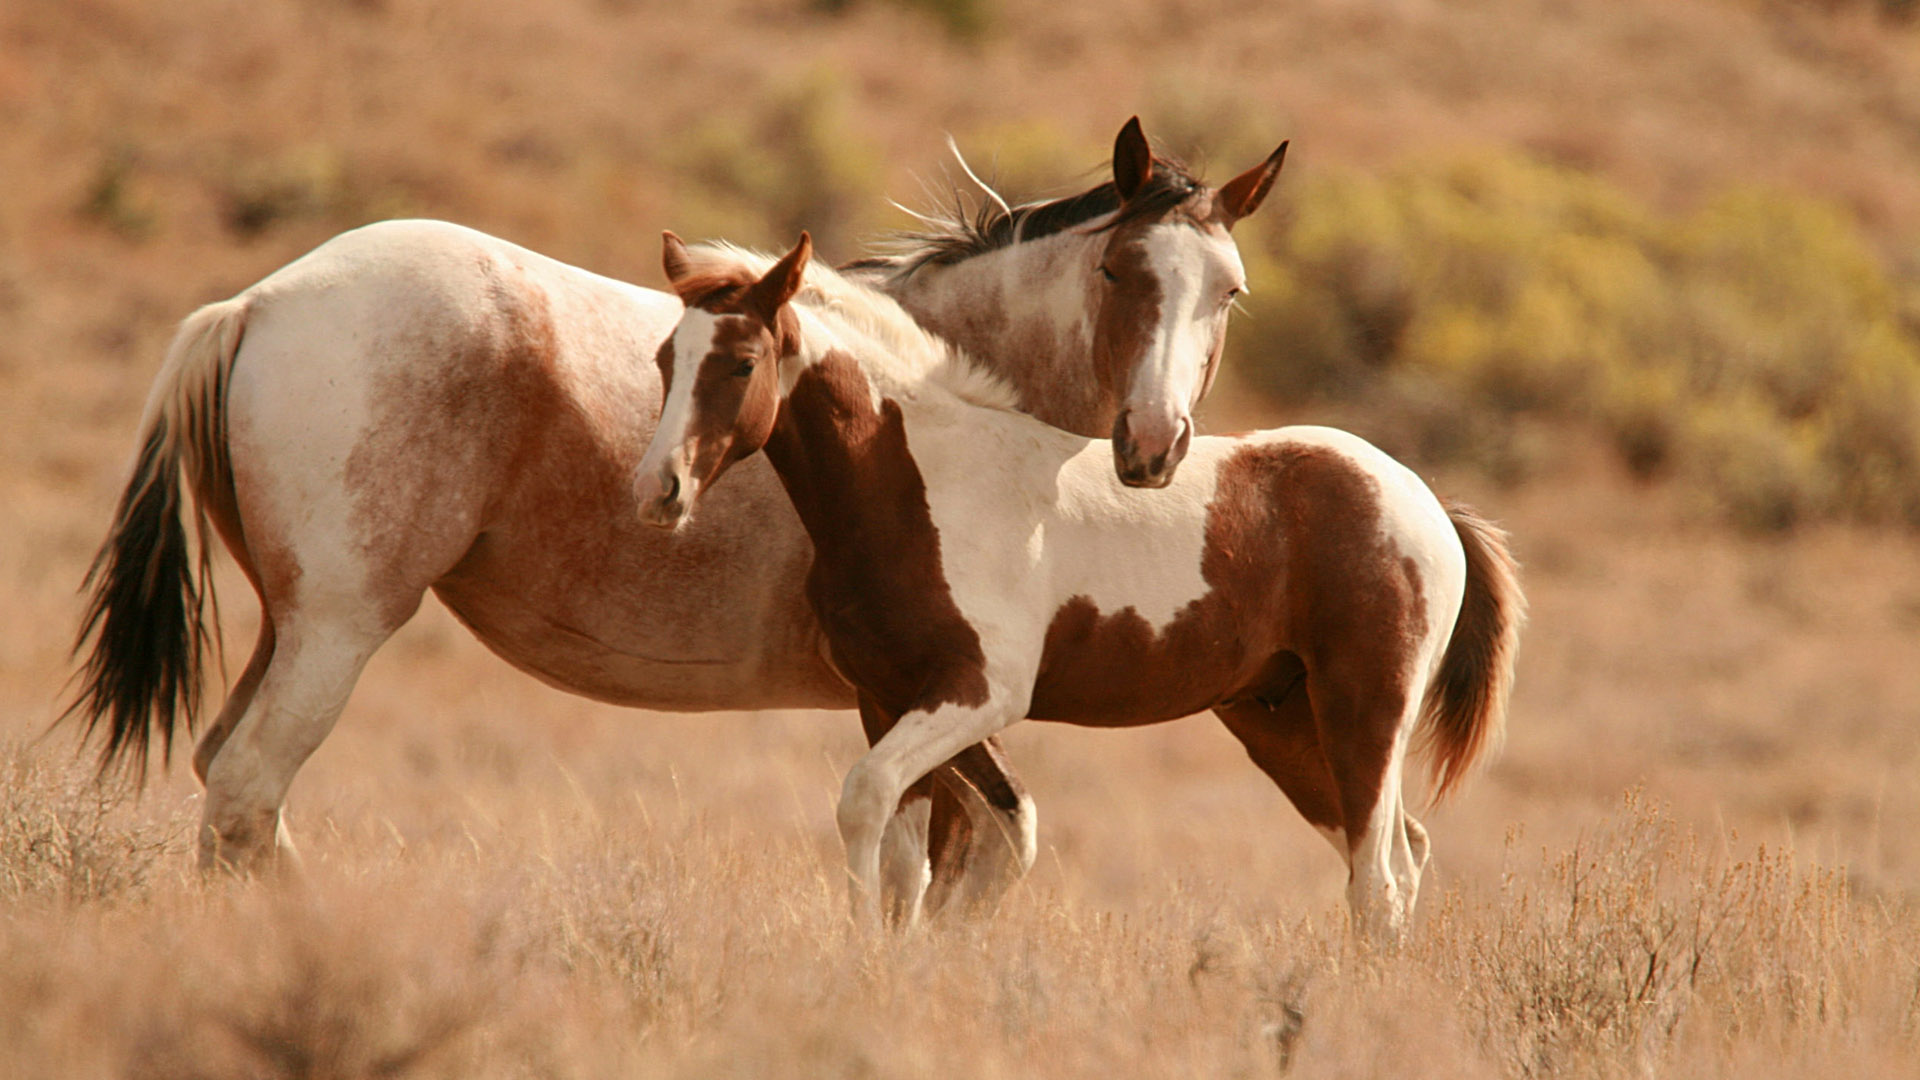 wallpaper brown and white horse HD wallpaper Background wallpaper 1920x1080